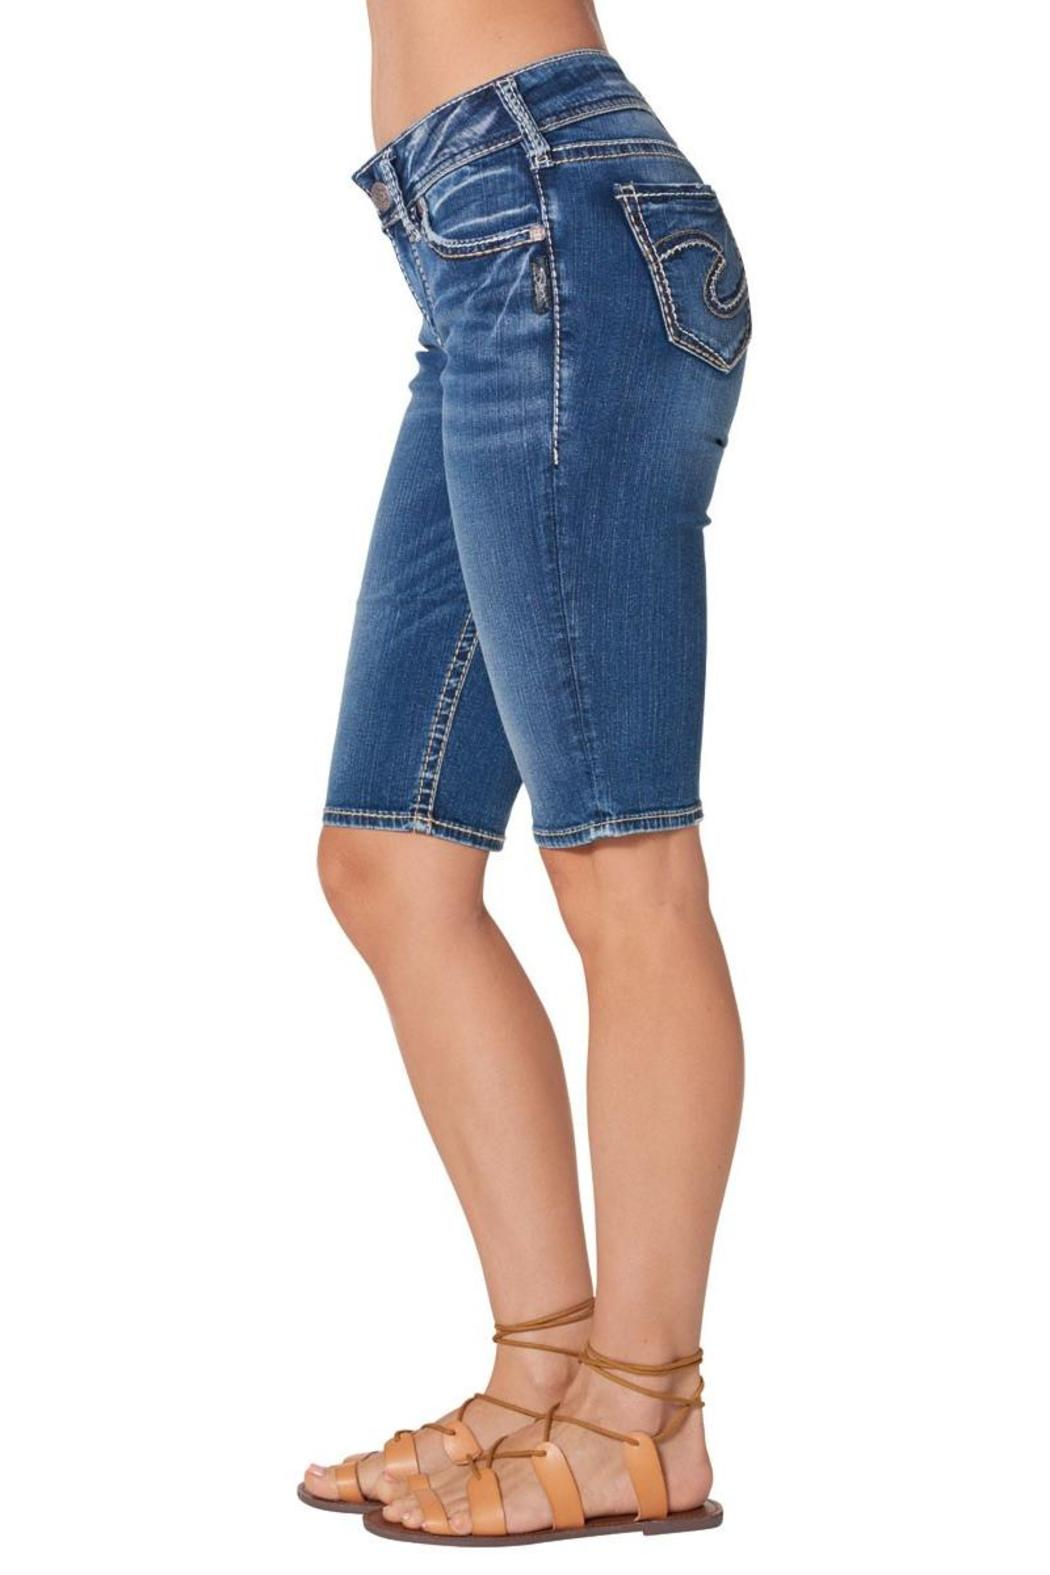 Silver Jeans Co. Suki Bermuda Short - Side Cropped Image